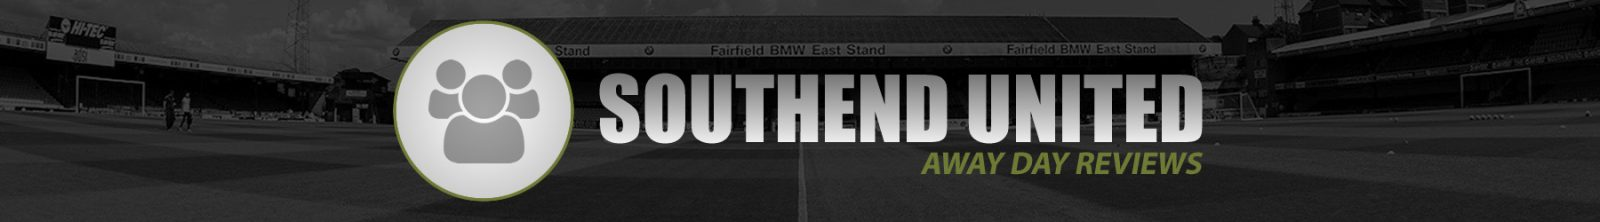 Review Southend United